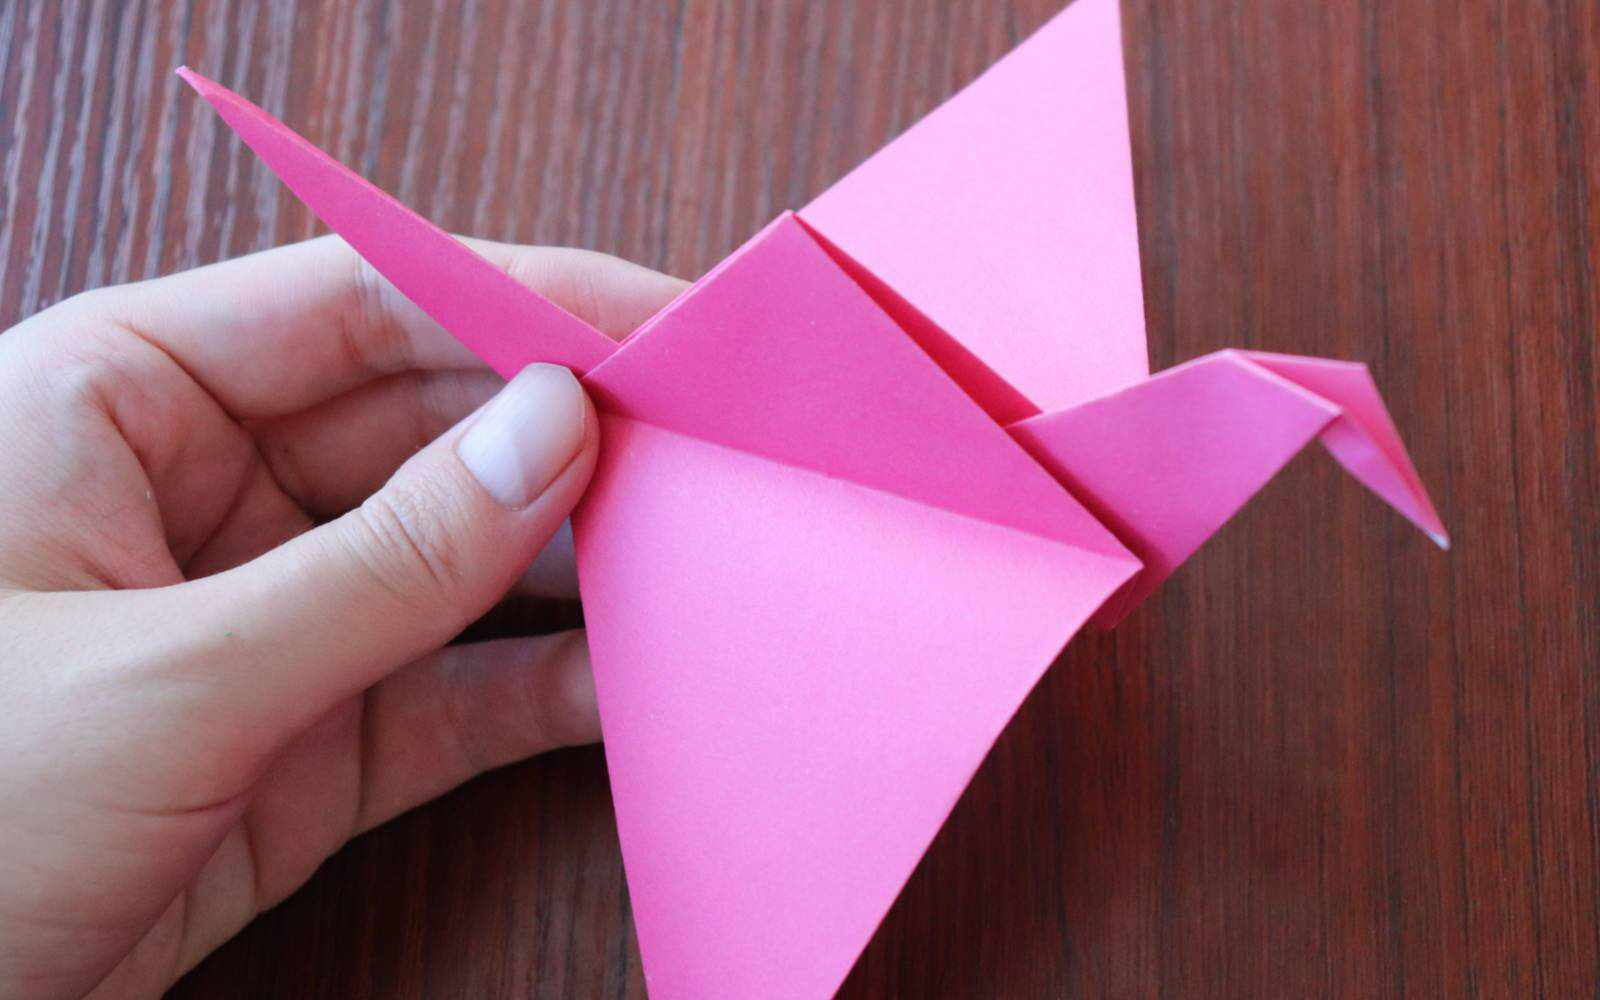 How To Make A Paper Crane With Flapping Wings Vinnyoleo Vegetal Schema Of Origami Mobile 3 An